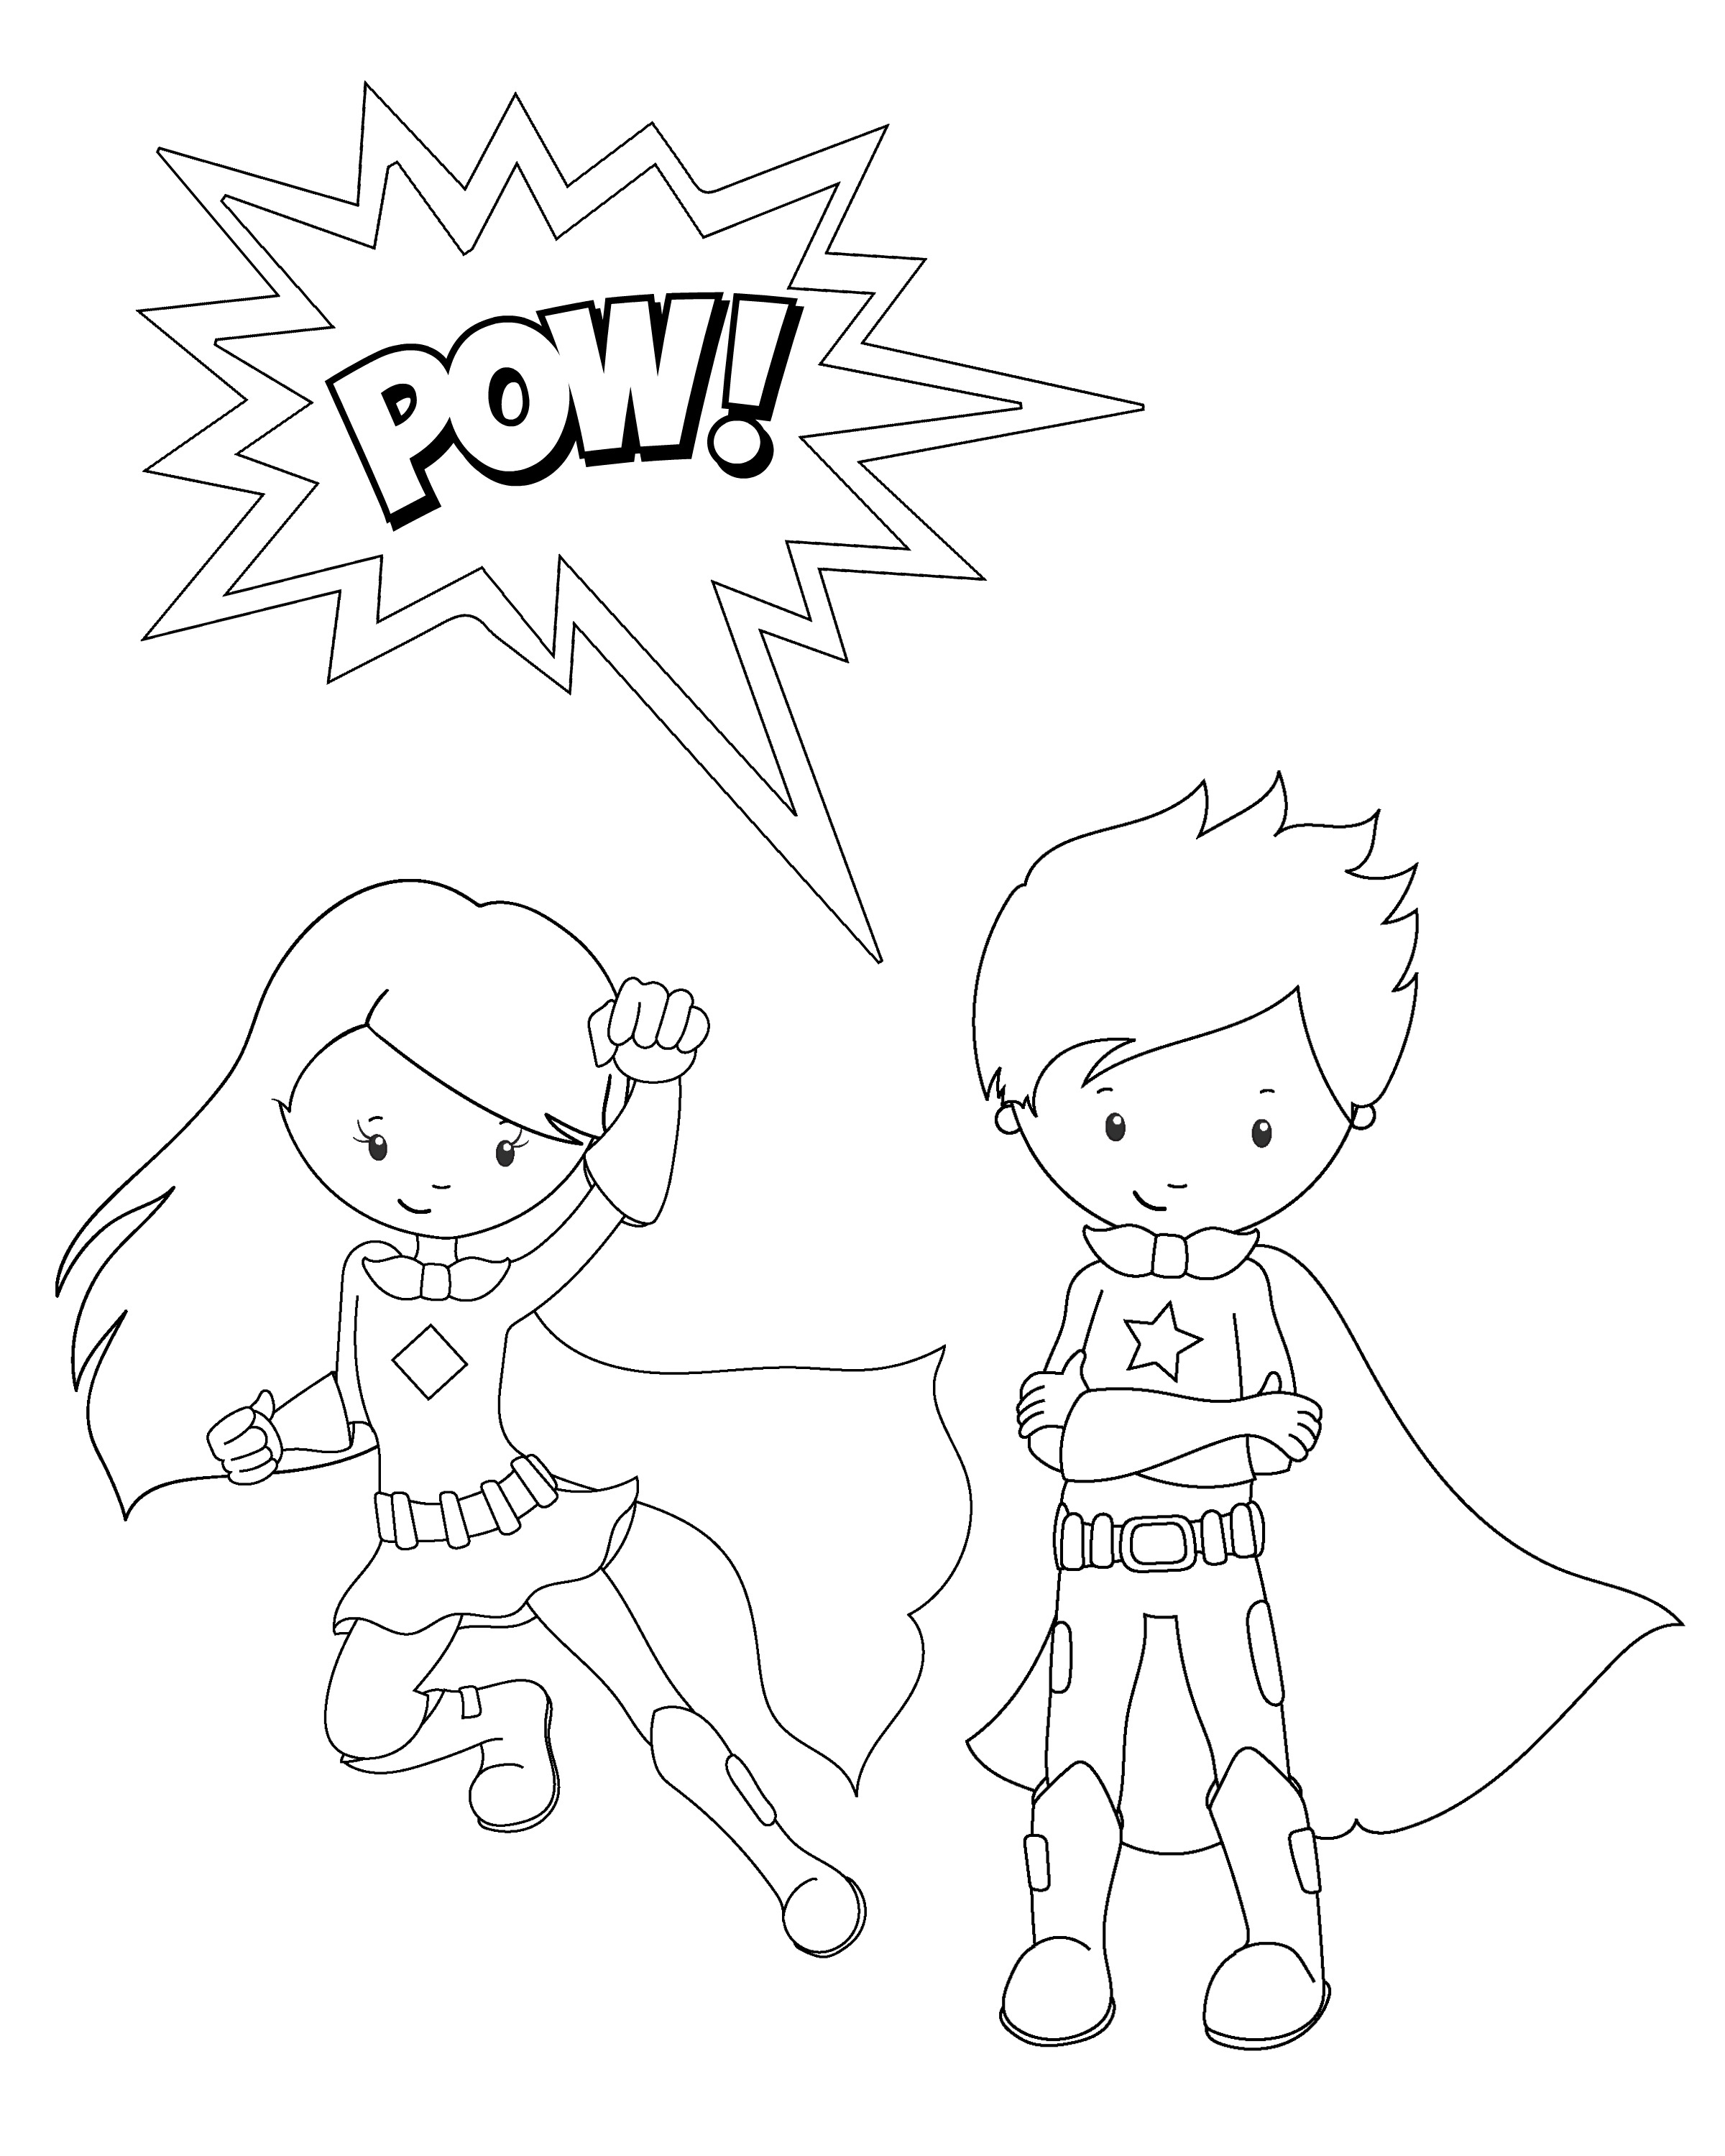 photo relating to Superhero Coloring Pages Printable titled Free of charge Printable Superhero Coloring Sheets for Children - Ridiculous